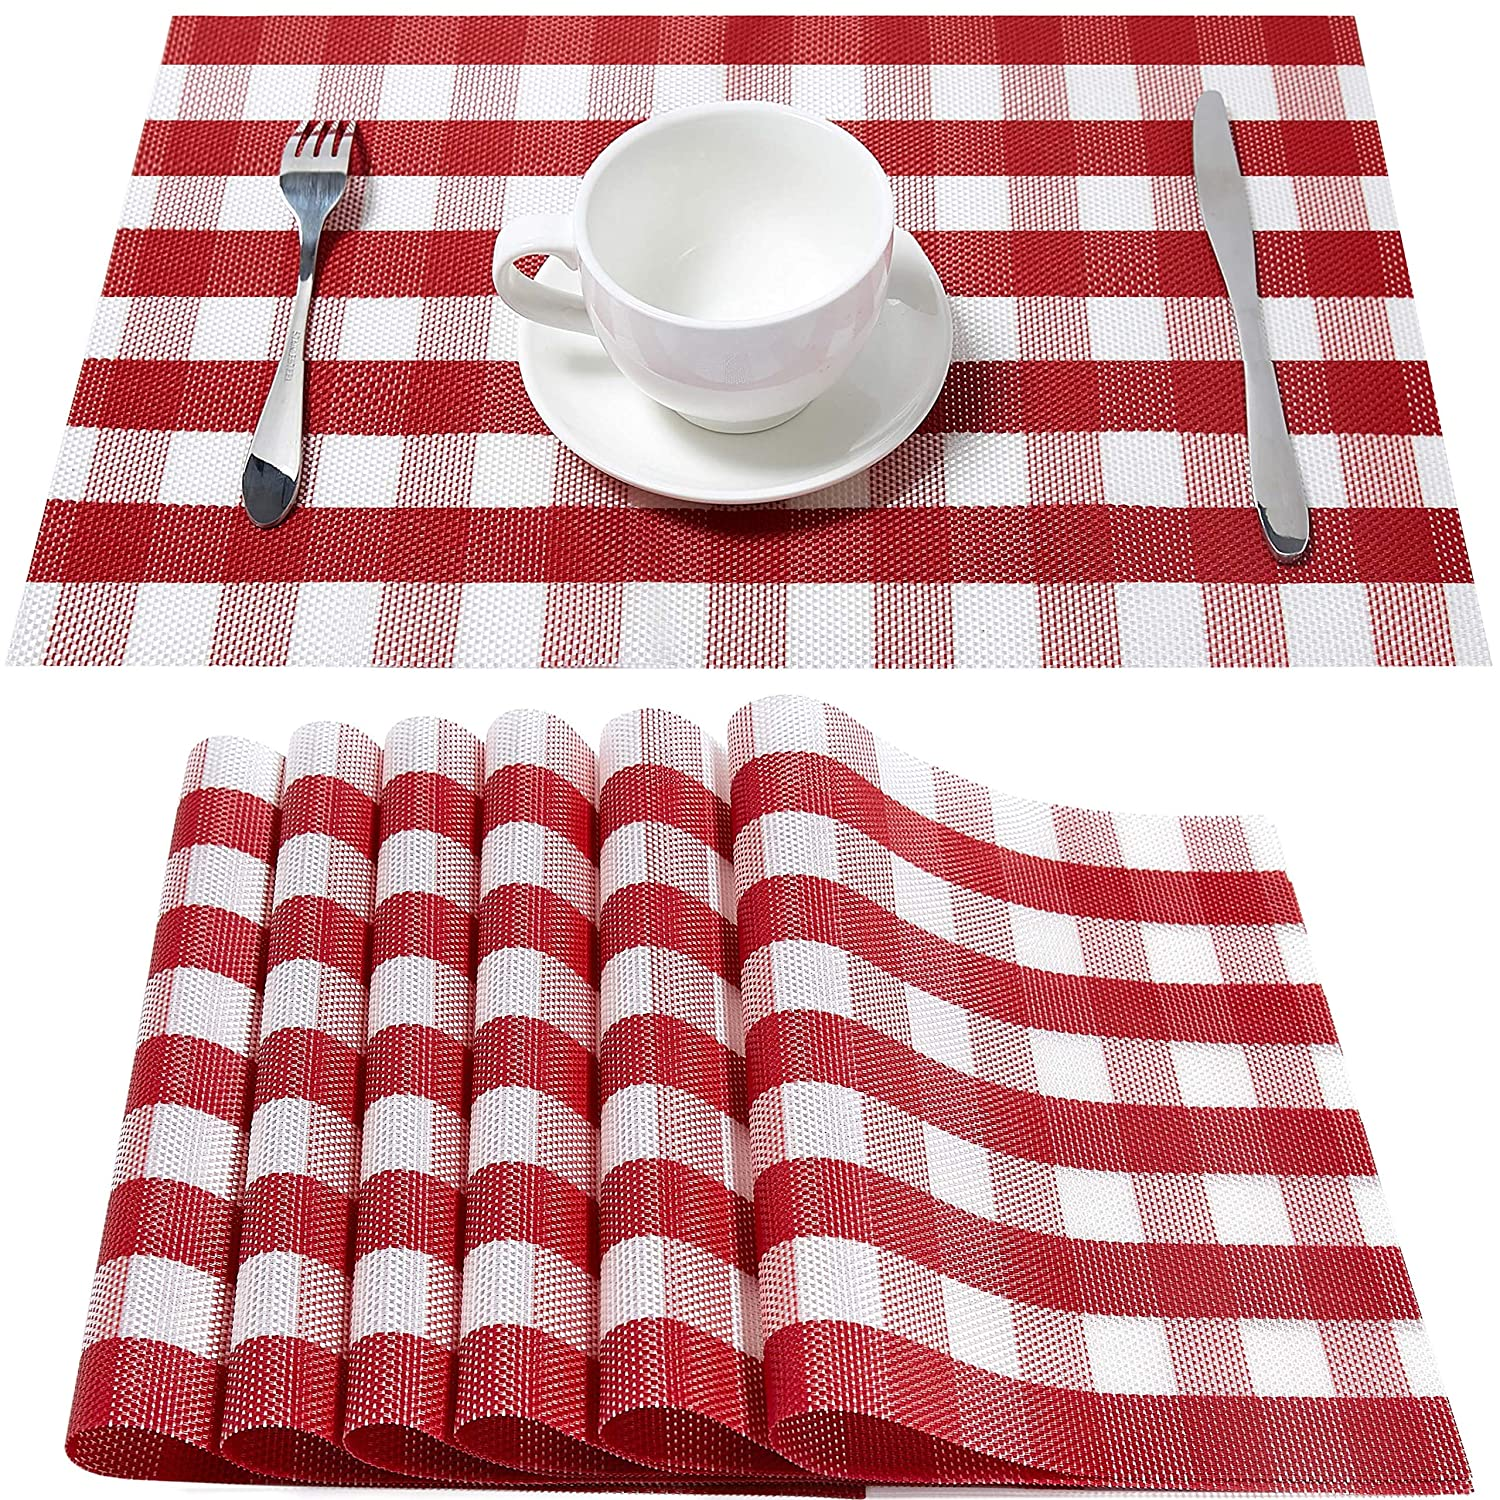 Buffalo Check Placemats Valentines Decorations,HQSILK Table Mats,Placemat Set of 6 Non-Slip Washable Place Mats,Heat Resistant Kitchen Tablemats for Dining Table (Red and White Buffalo Check )